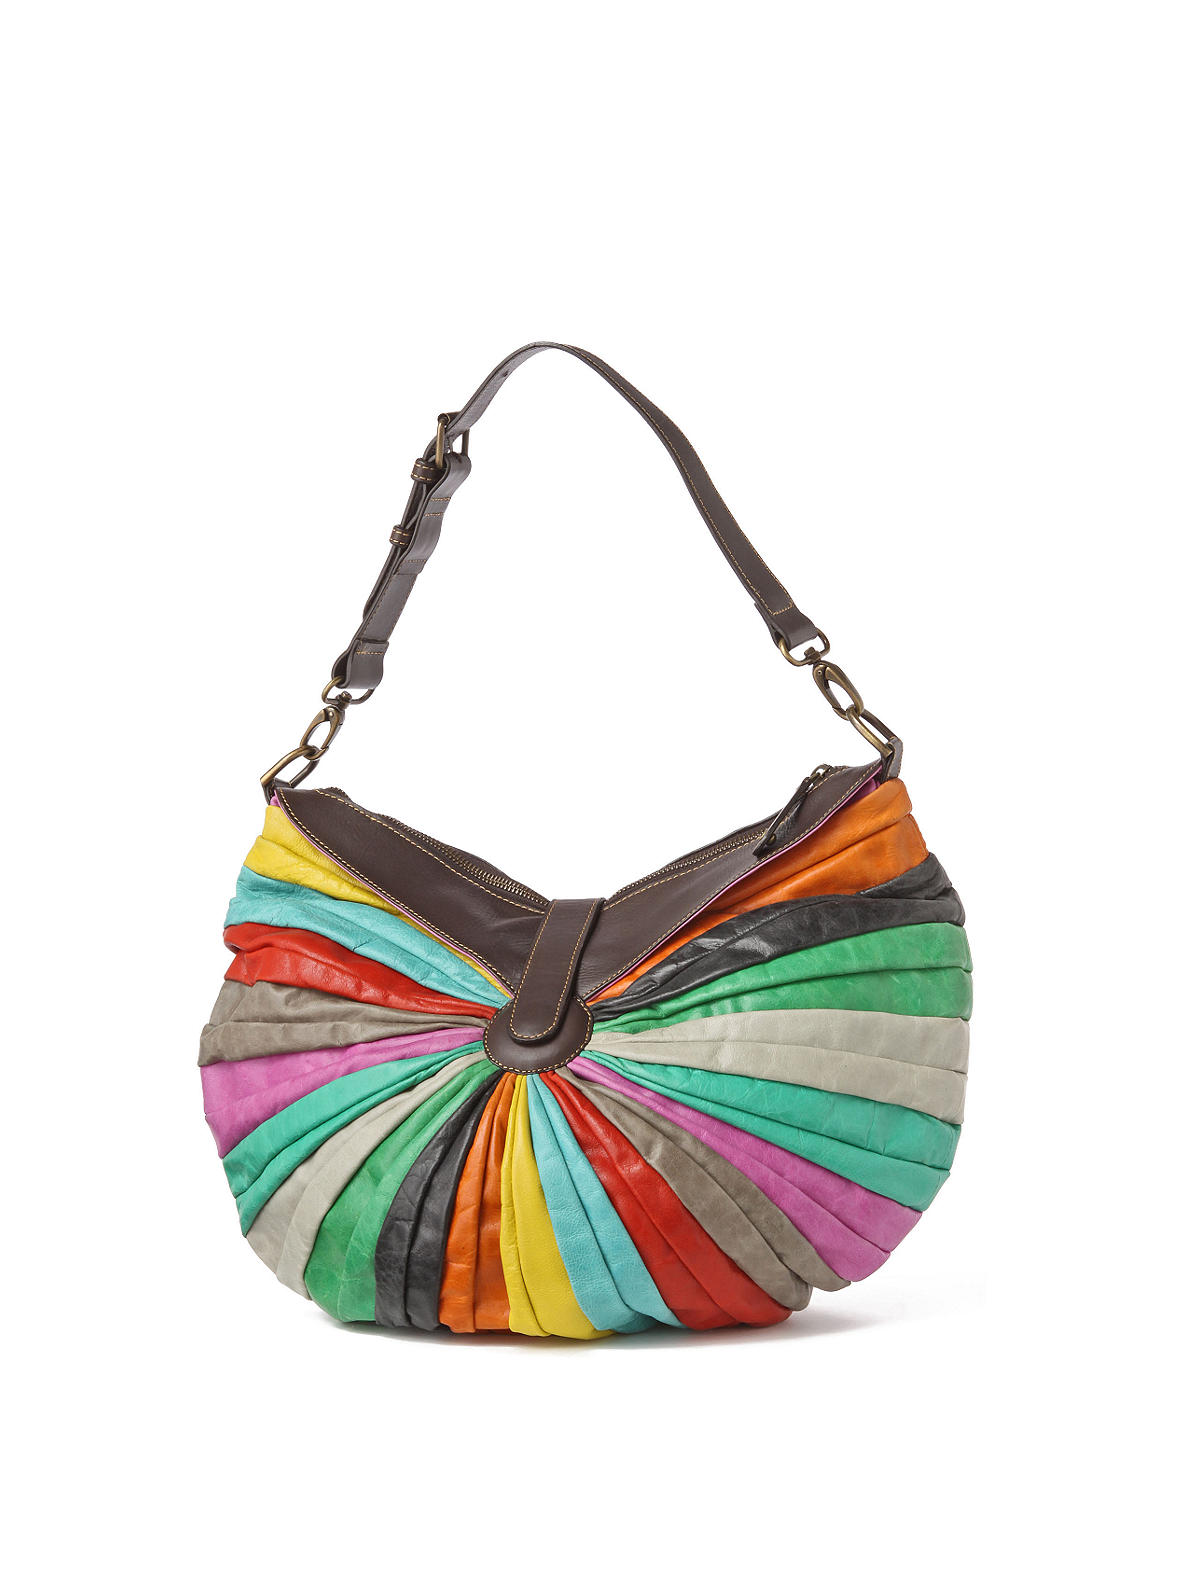 Circus Act Bag - Anthropologie.com from anthropologie.com